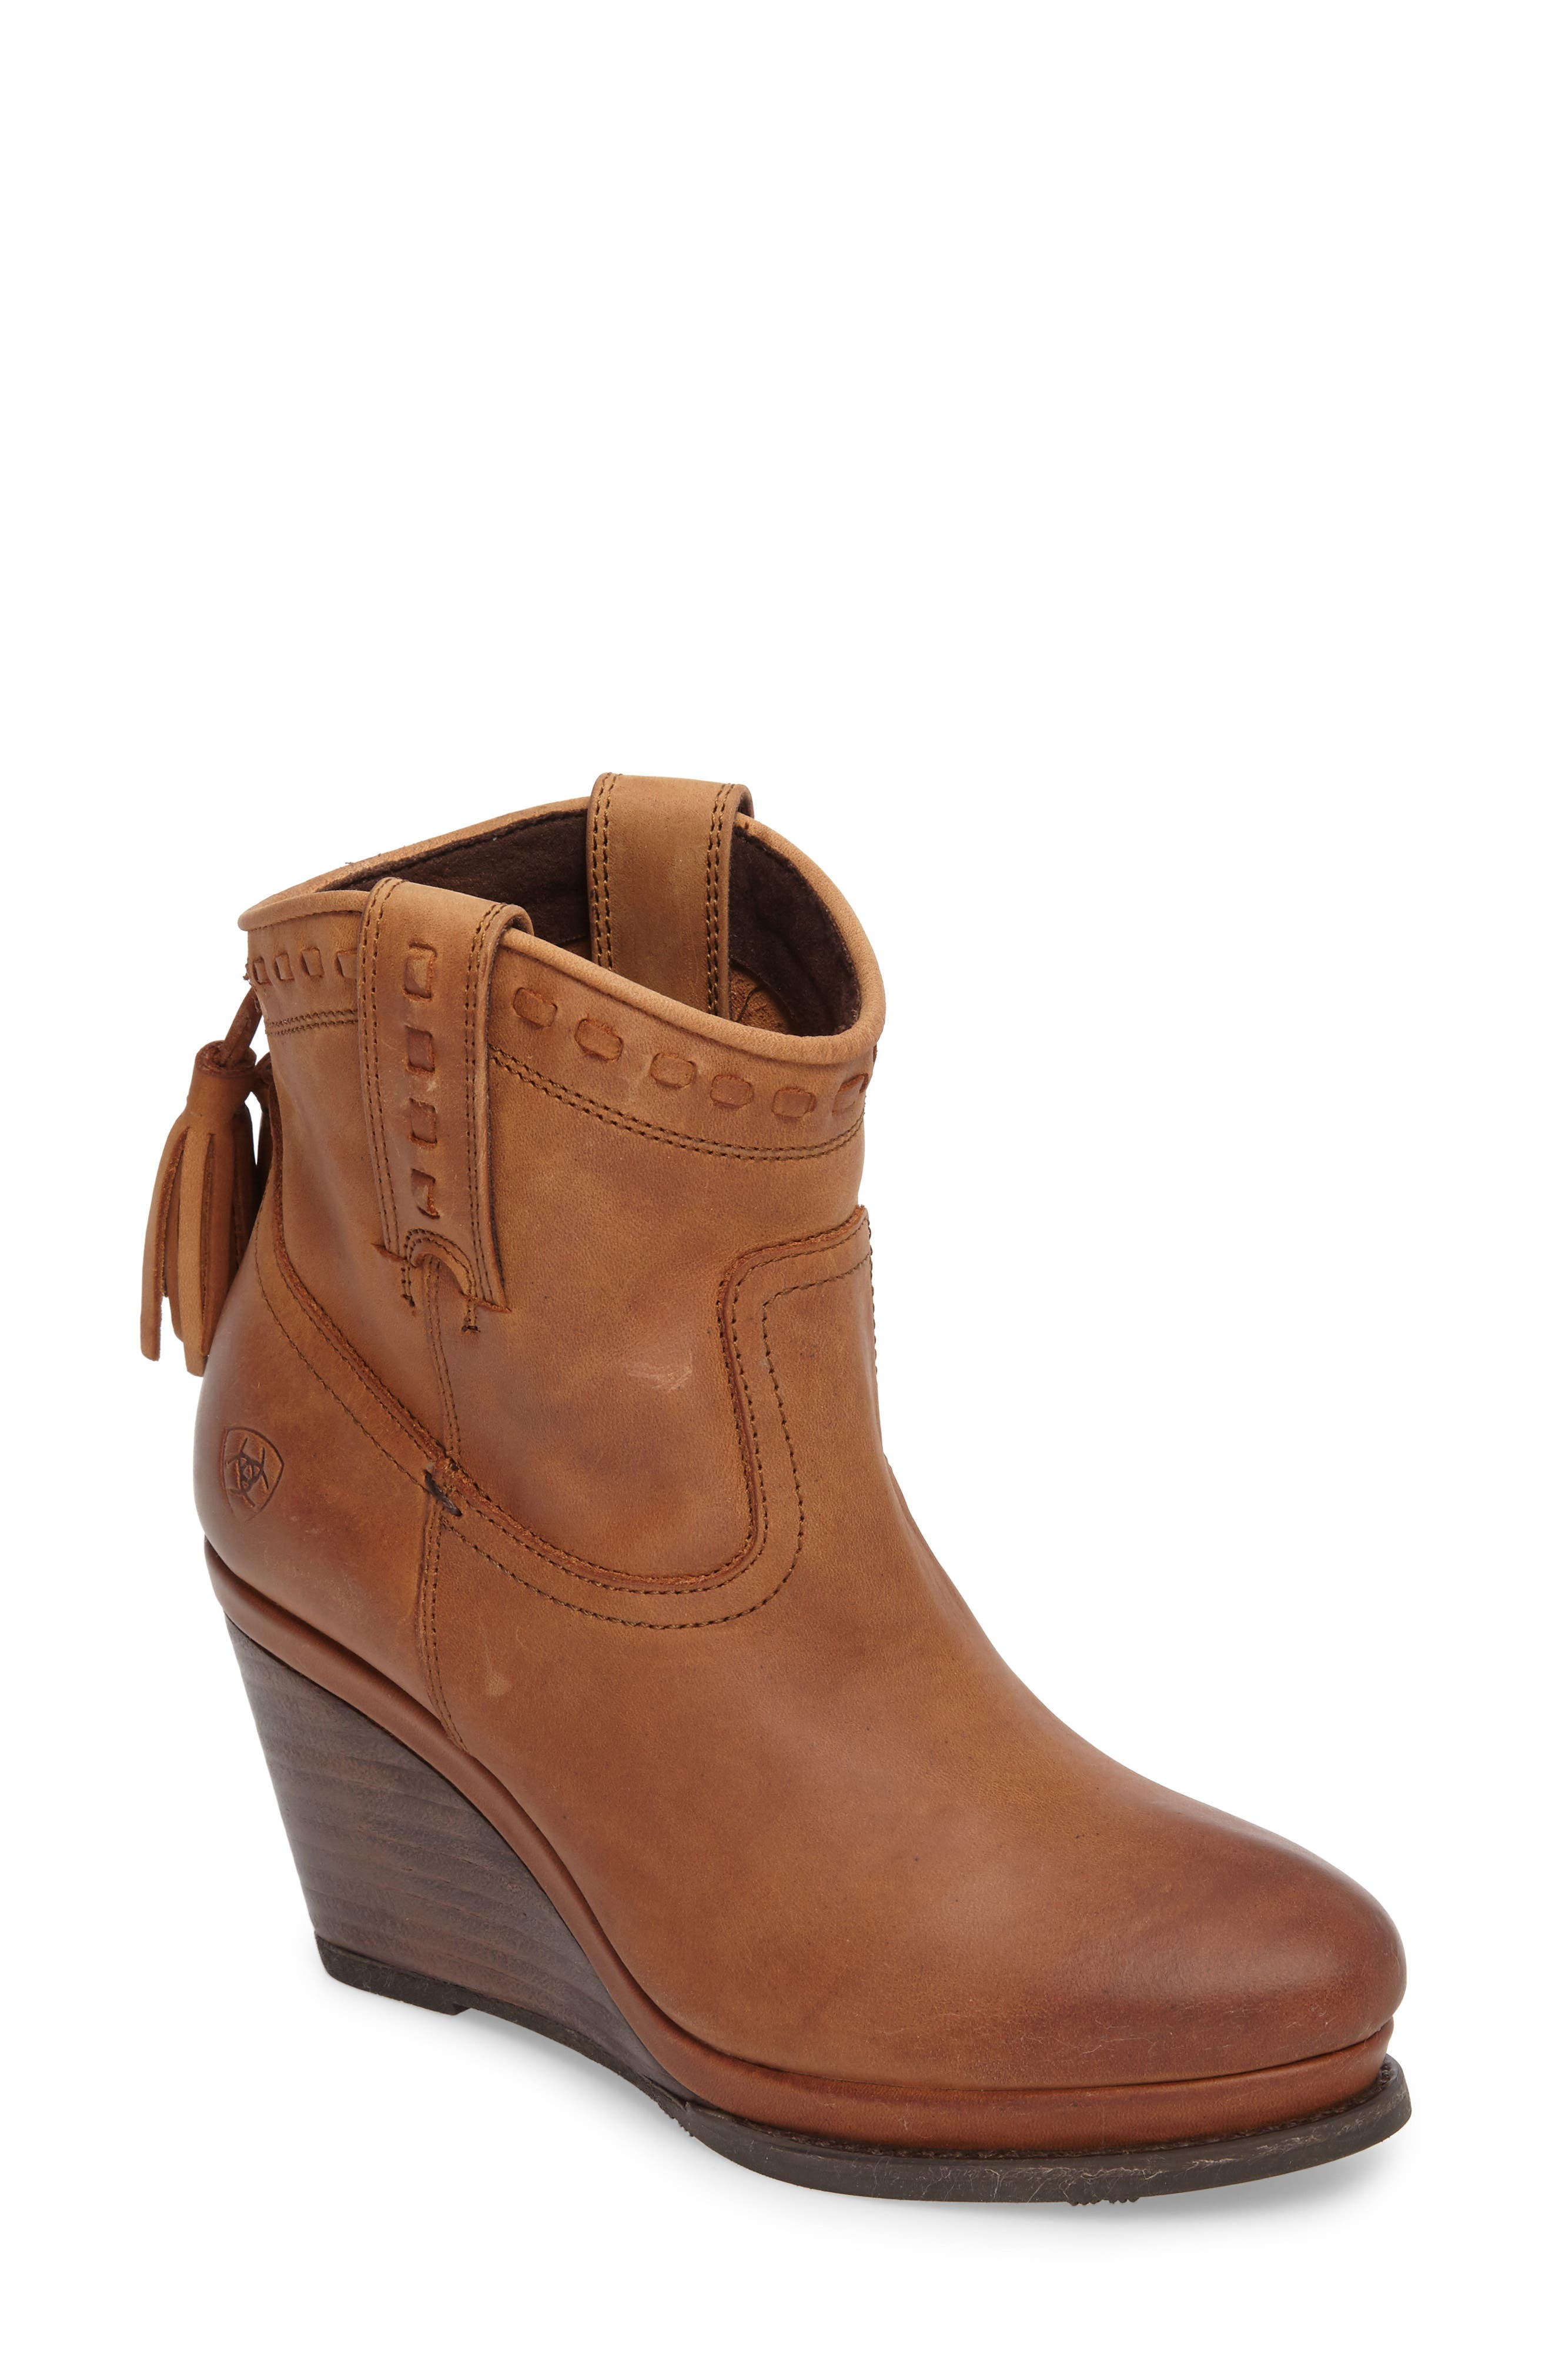 Main Image - Ariat Broadway Western Wedge Boot (Women)